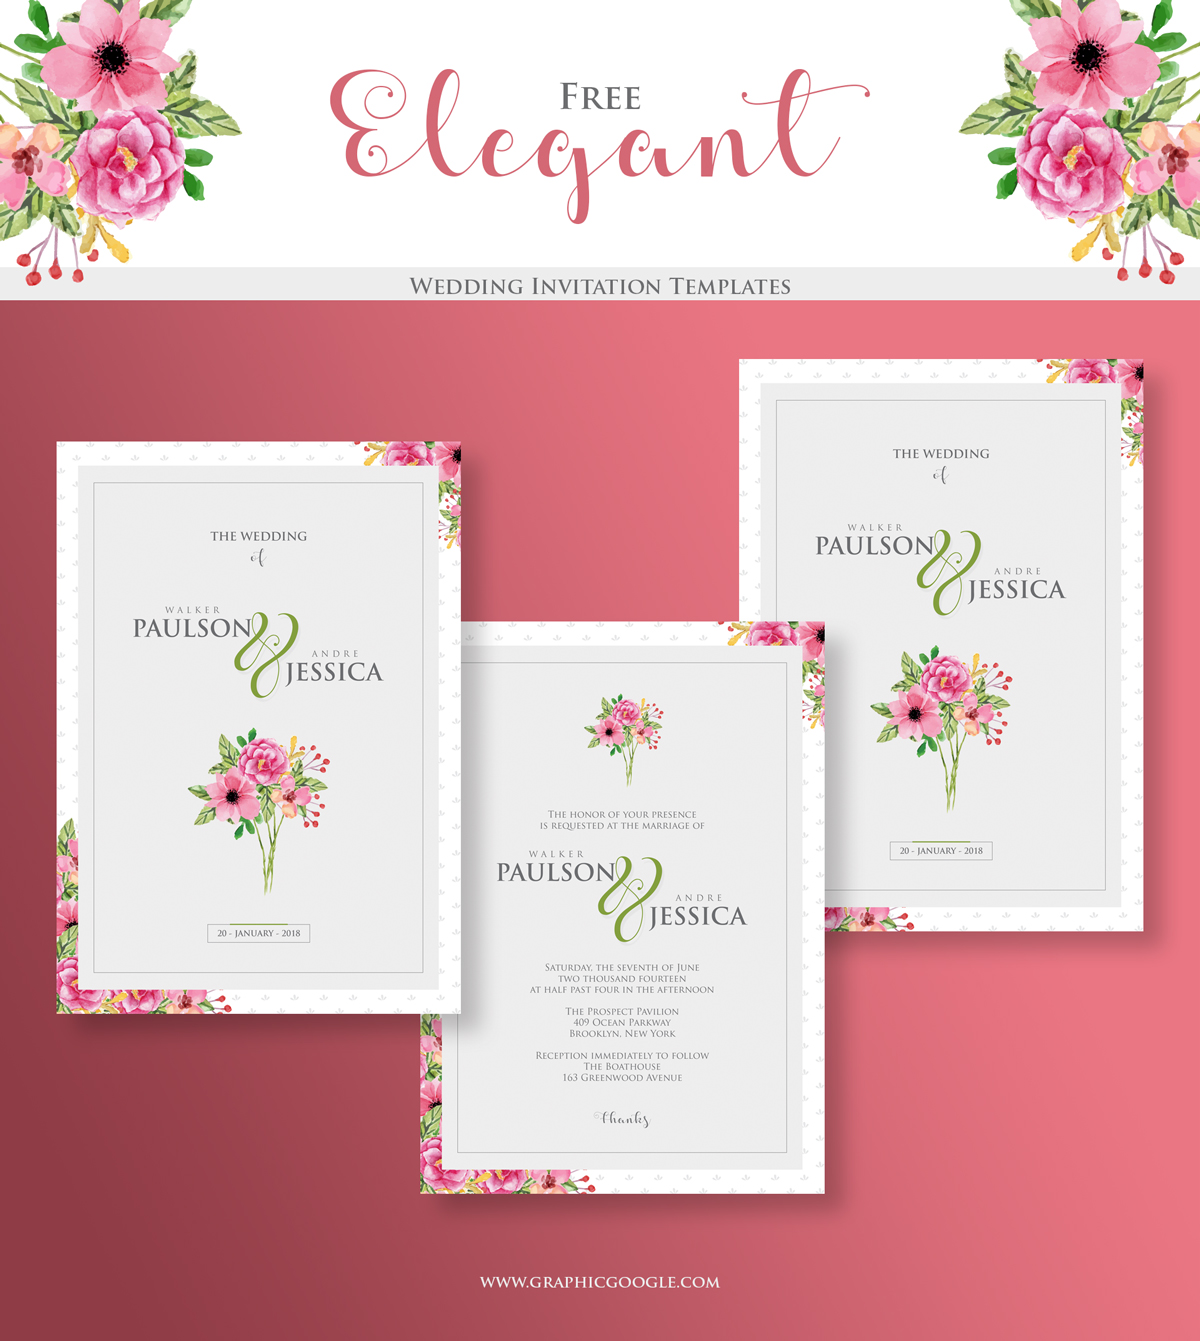 free printable wedding invitation templates - free elegant wedding invitation templates